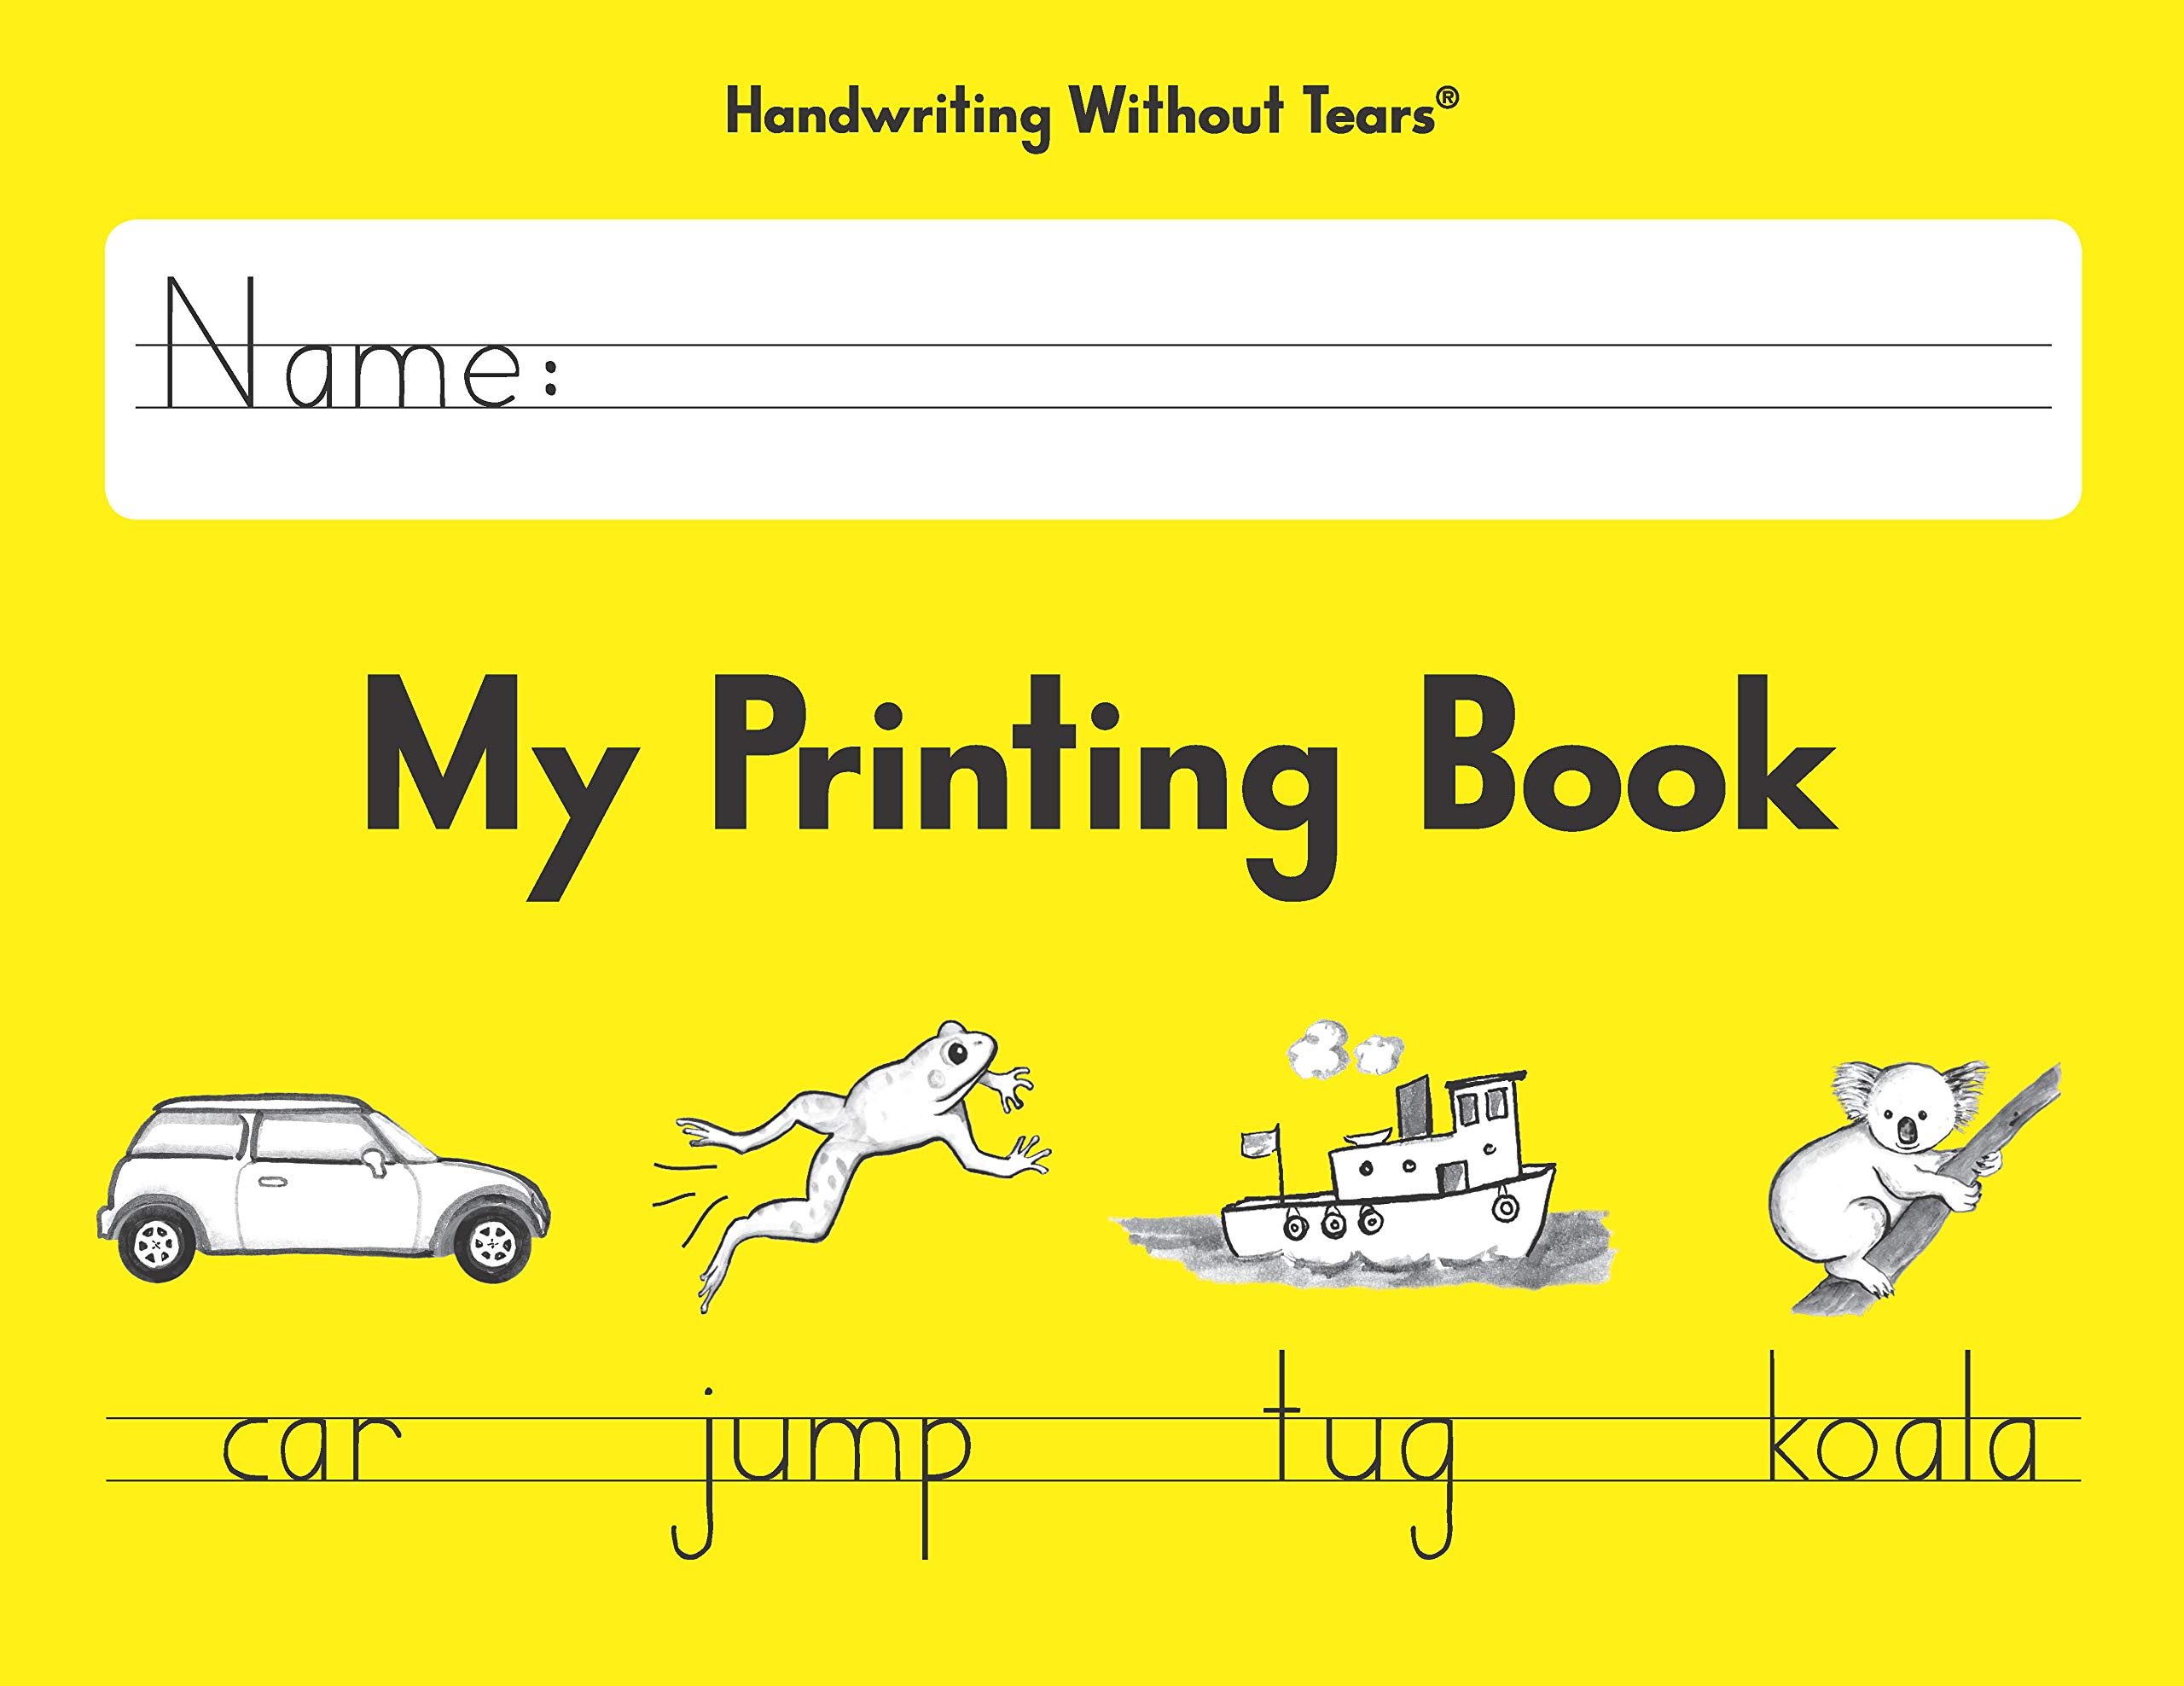 Learning Without Tears - My Printing Book - 2013 Edition - Student Workbook by Handwriting Without Tears